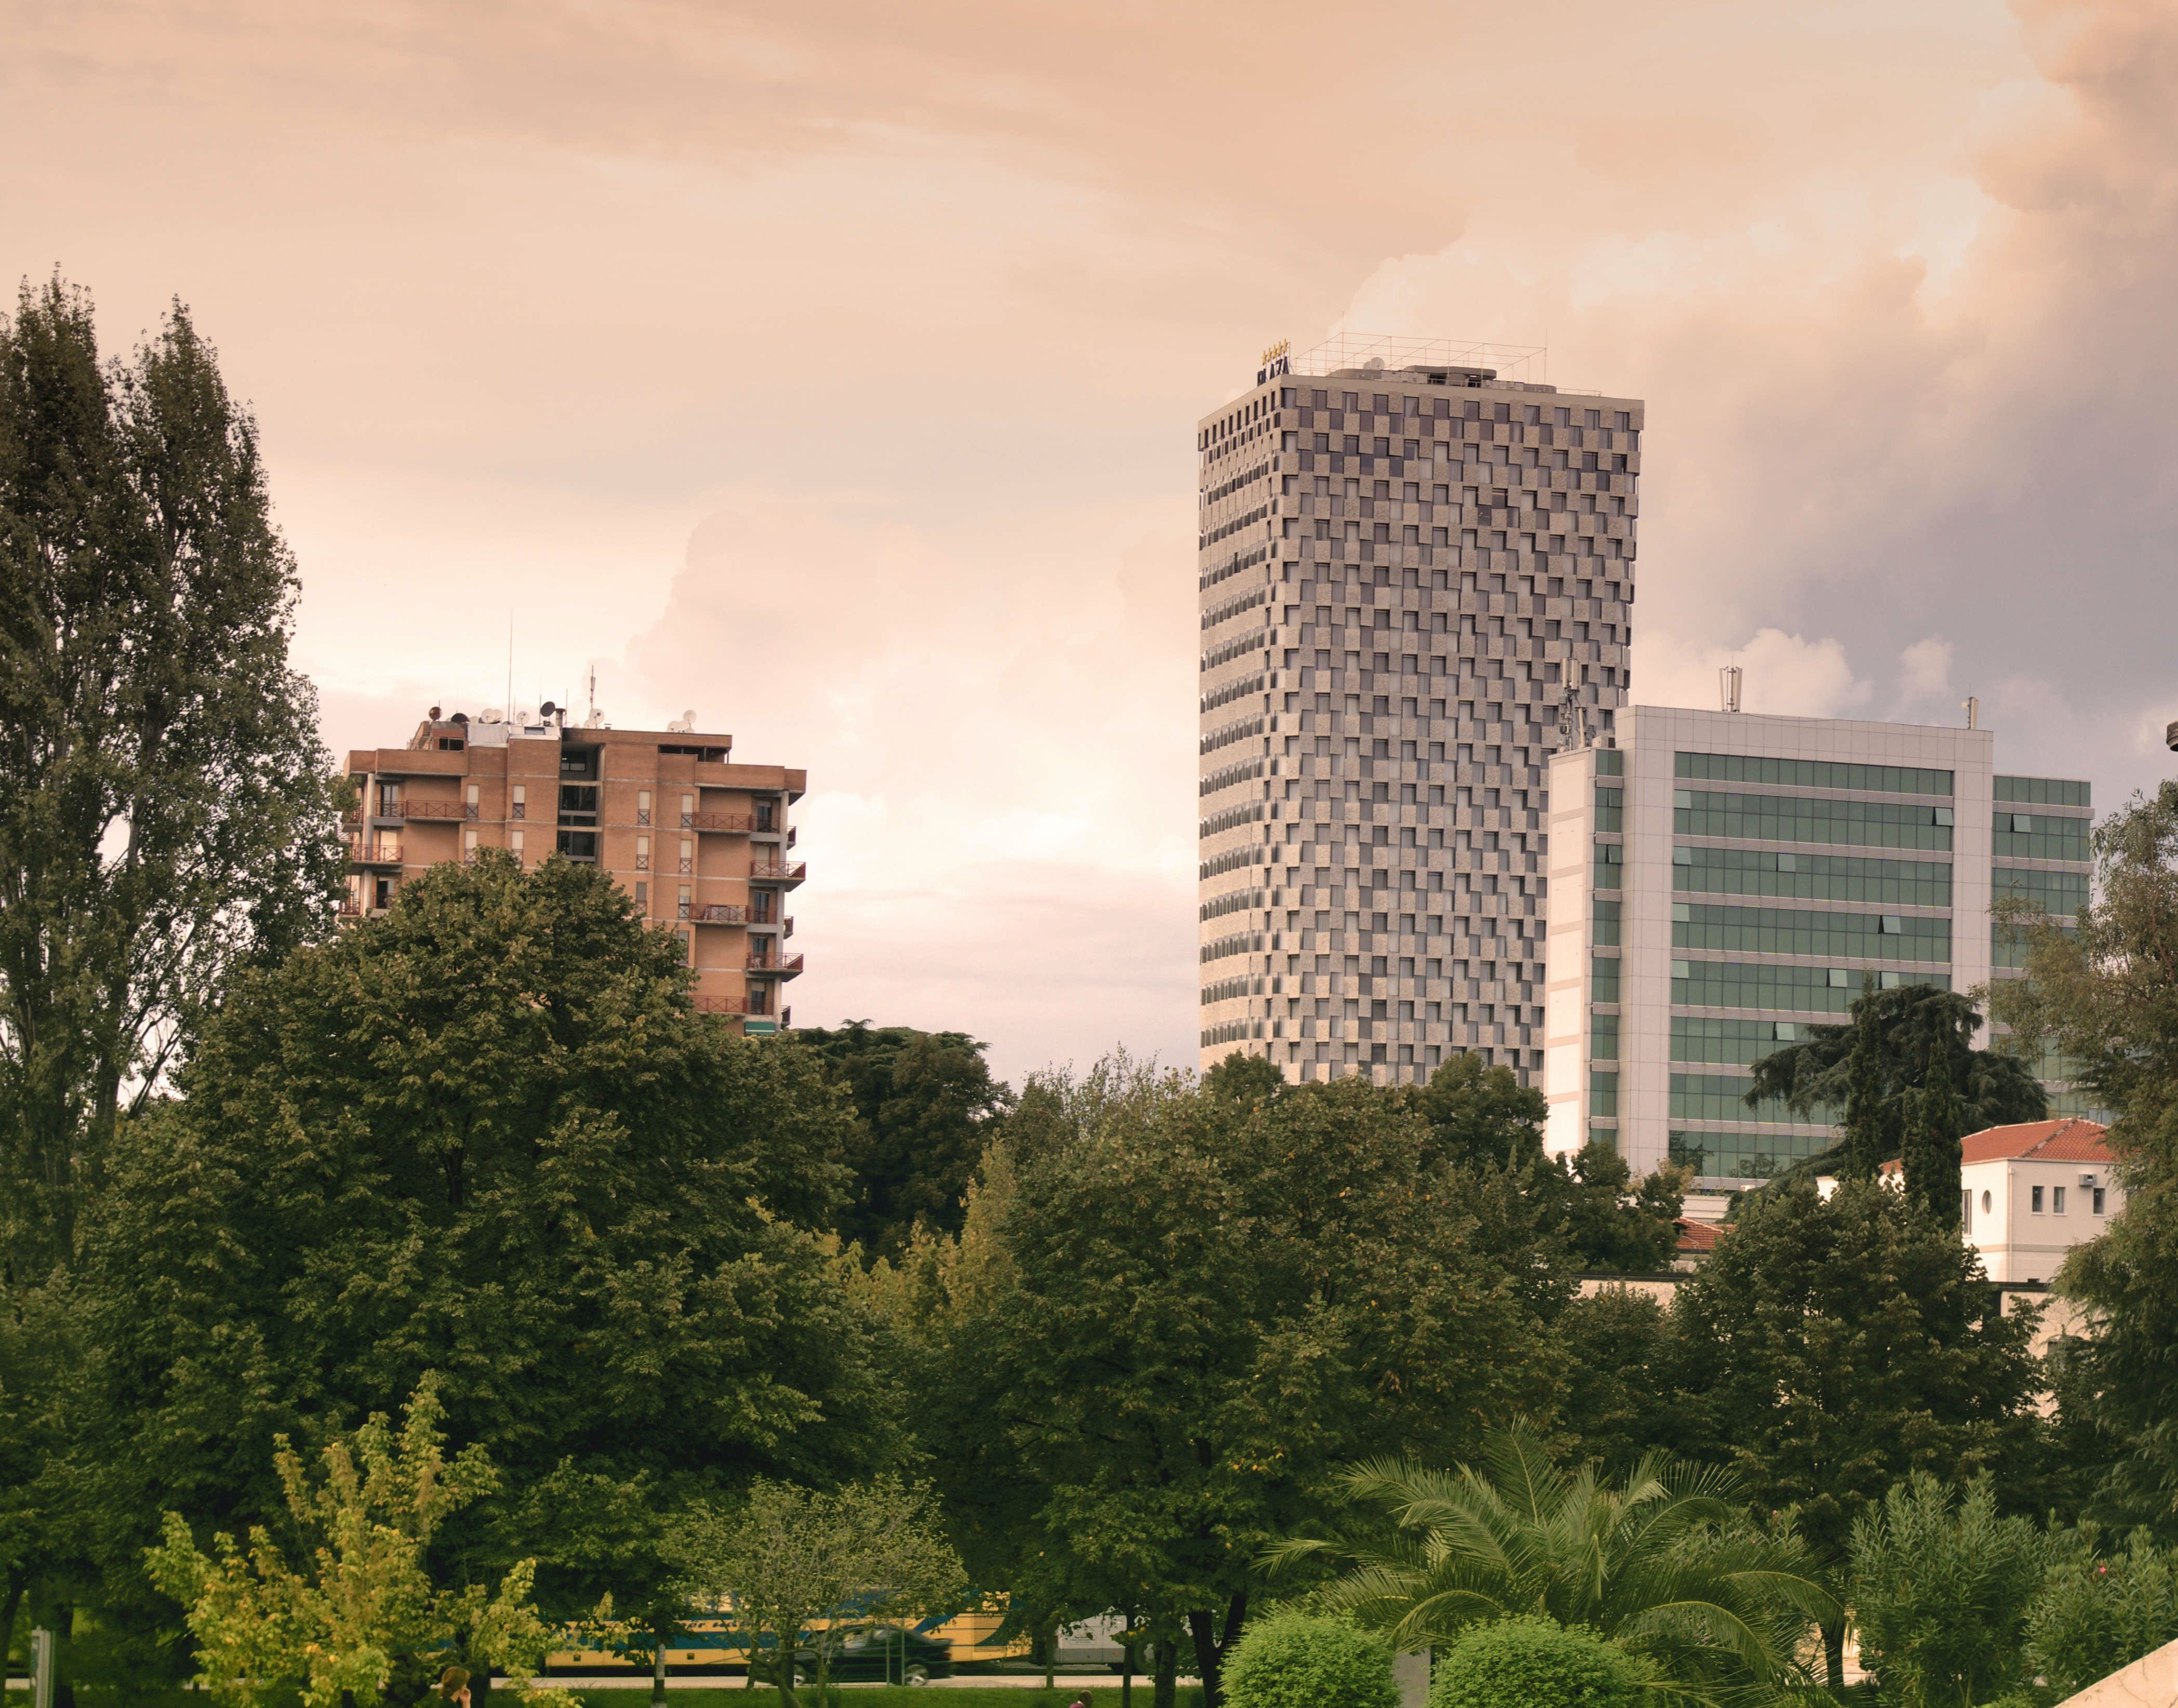 High Rise Buildings Near Green Leaf Trees Under White Sky during Daytime